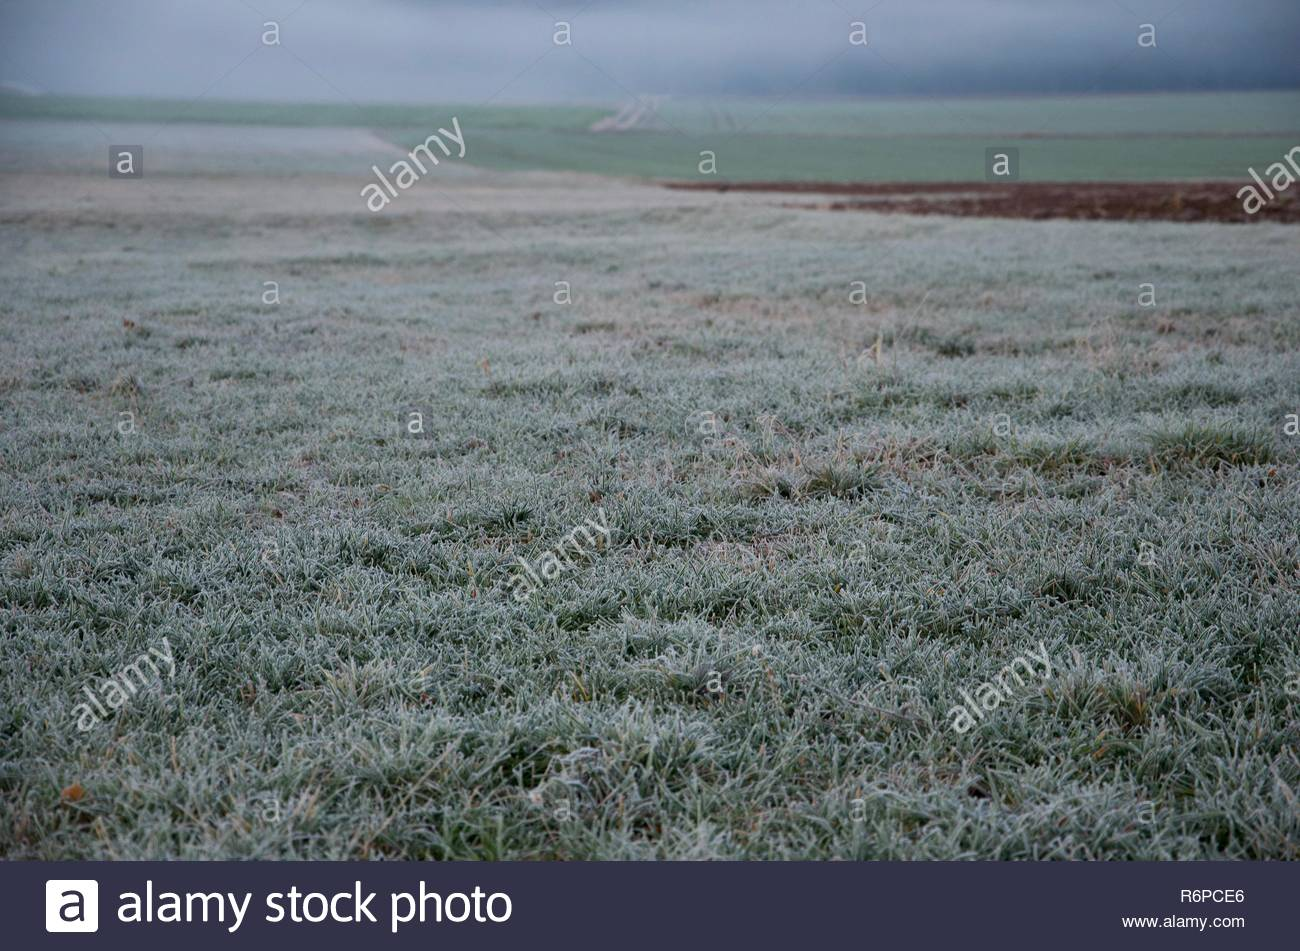 A frosty morning after sunrise in the countryside of Bavaria in Germany, rime on the fields, a black bird in the middle - Stock Image